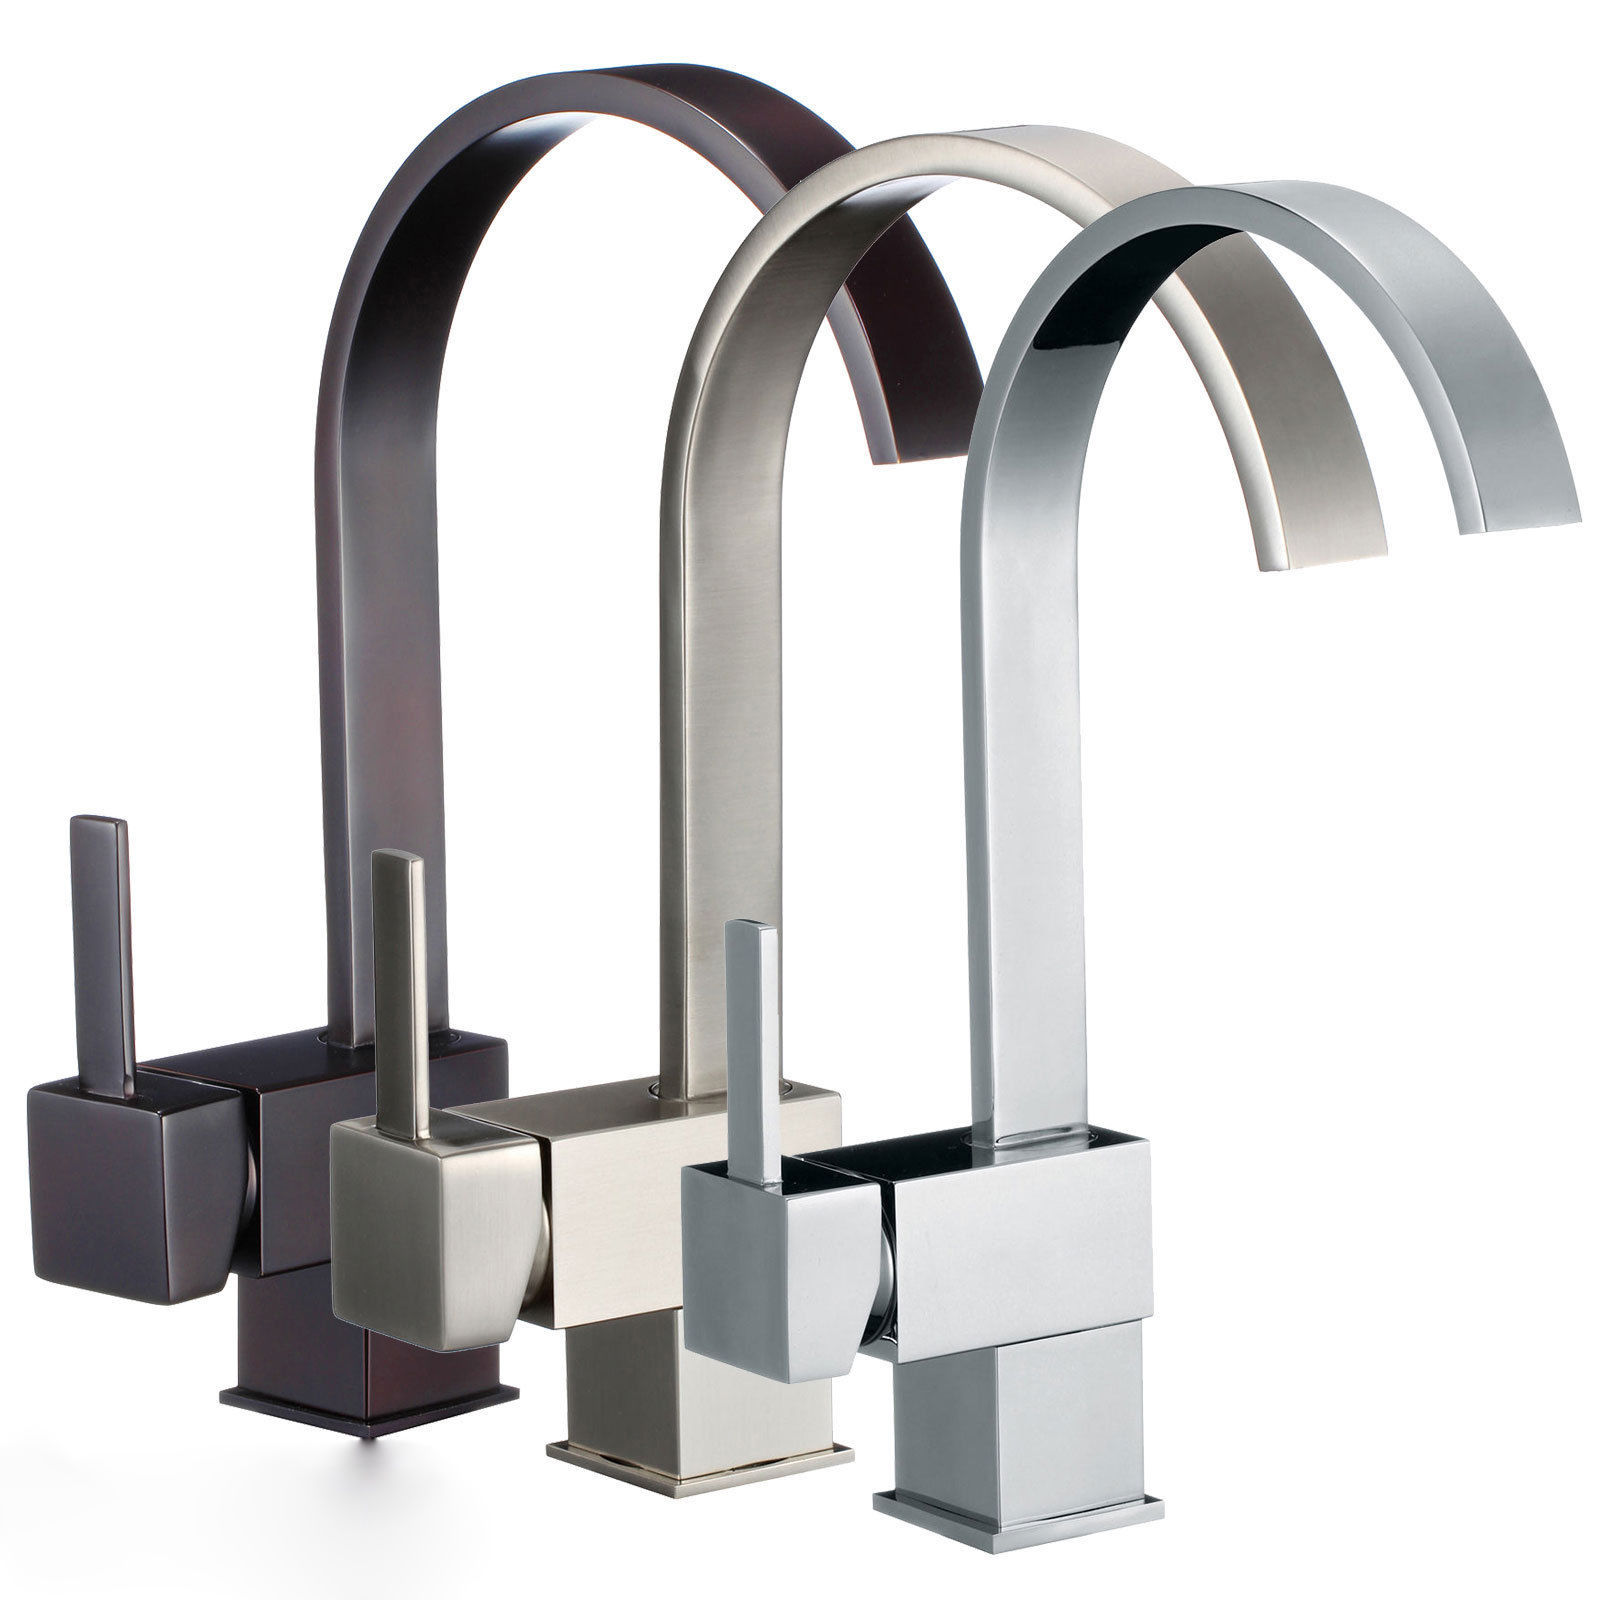 Single Handle Bathroom / Kitchen Waterfall Sink Faucet Bornze / Nickel Brushed / Polished Chrome